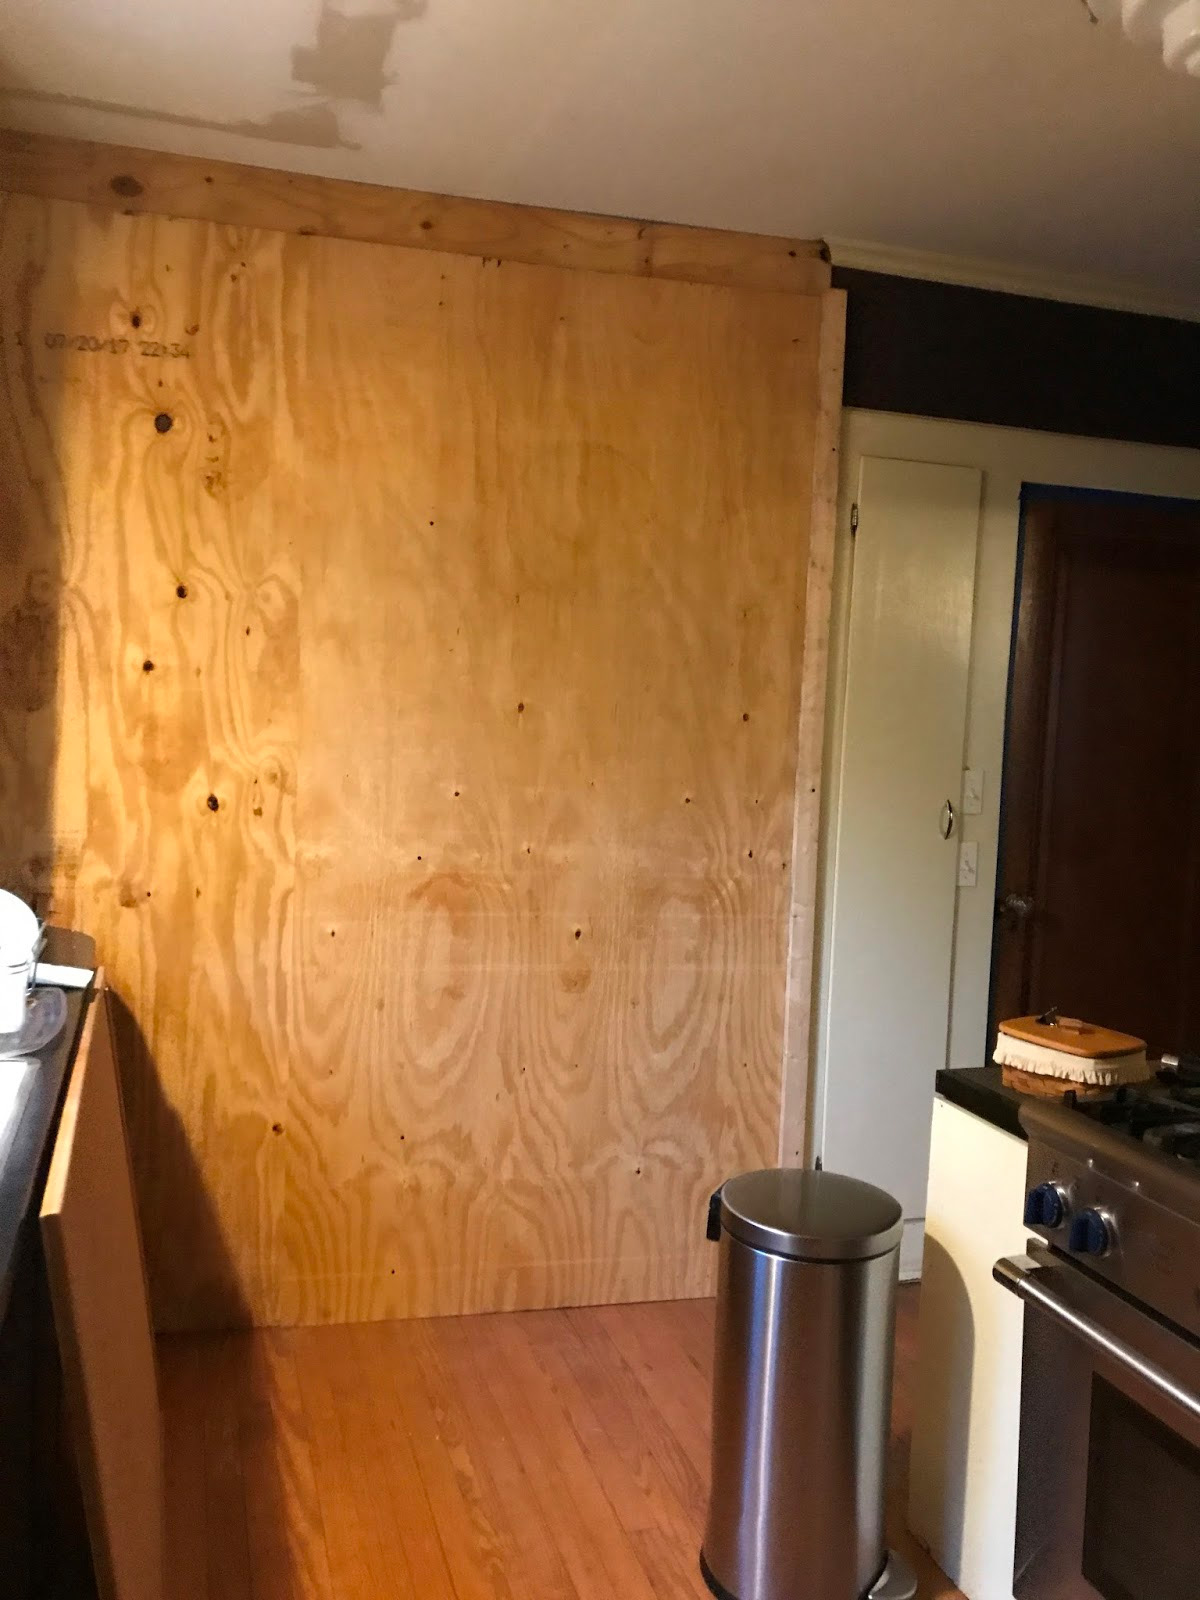 plywood in kitchen.jpg